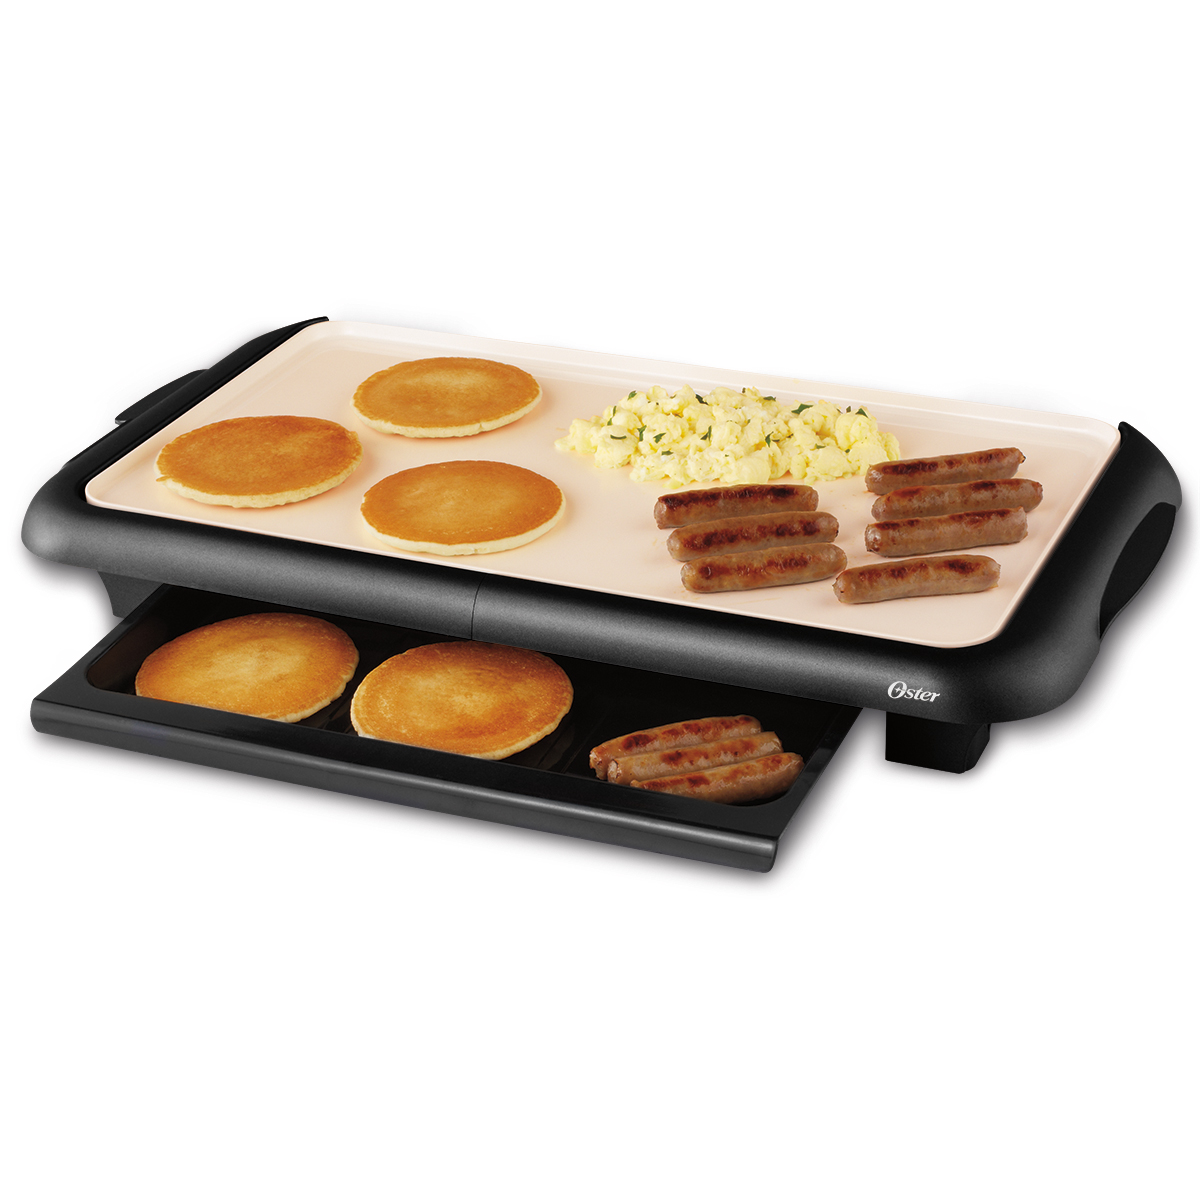 "Oster® Titanium Infused DuraCeramic™ 10"" x 18.5"" Griddle w/ Warming Tray by Oster"